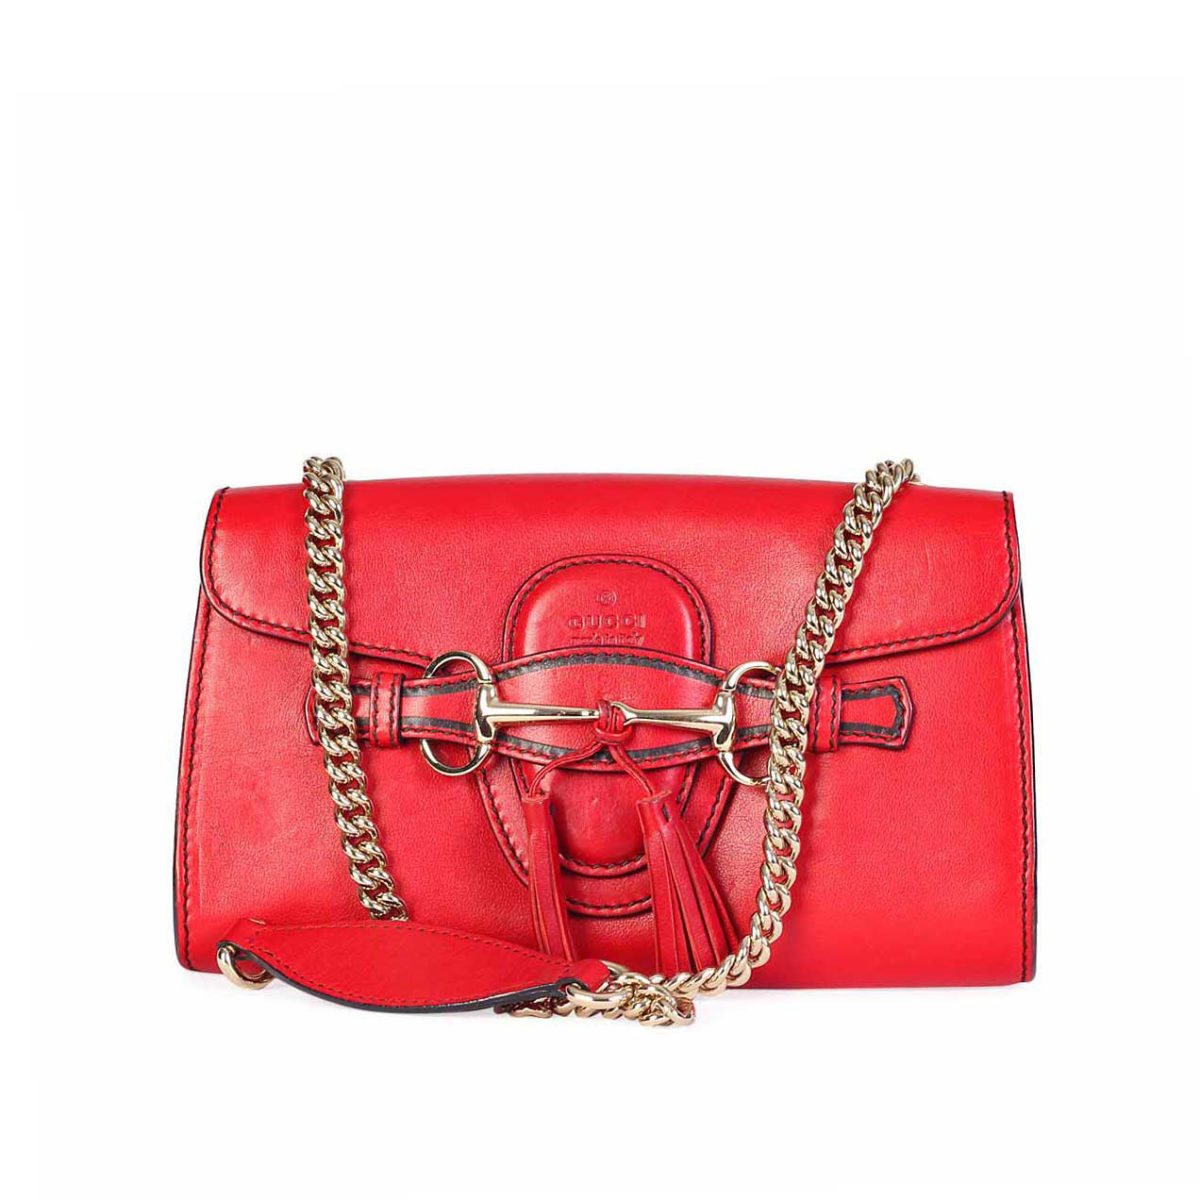 a2d23550751a GUCCI Emily Horsebit Tassel Chain Strap Shoulder Bag Red | Luxity